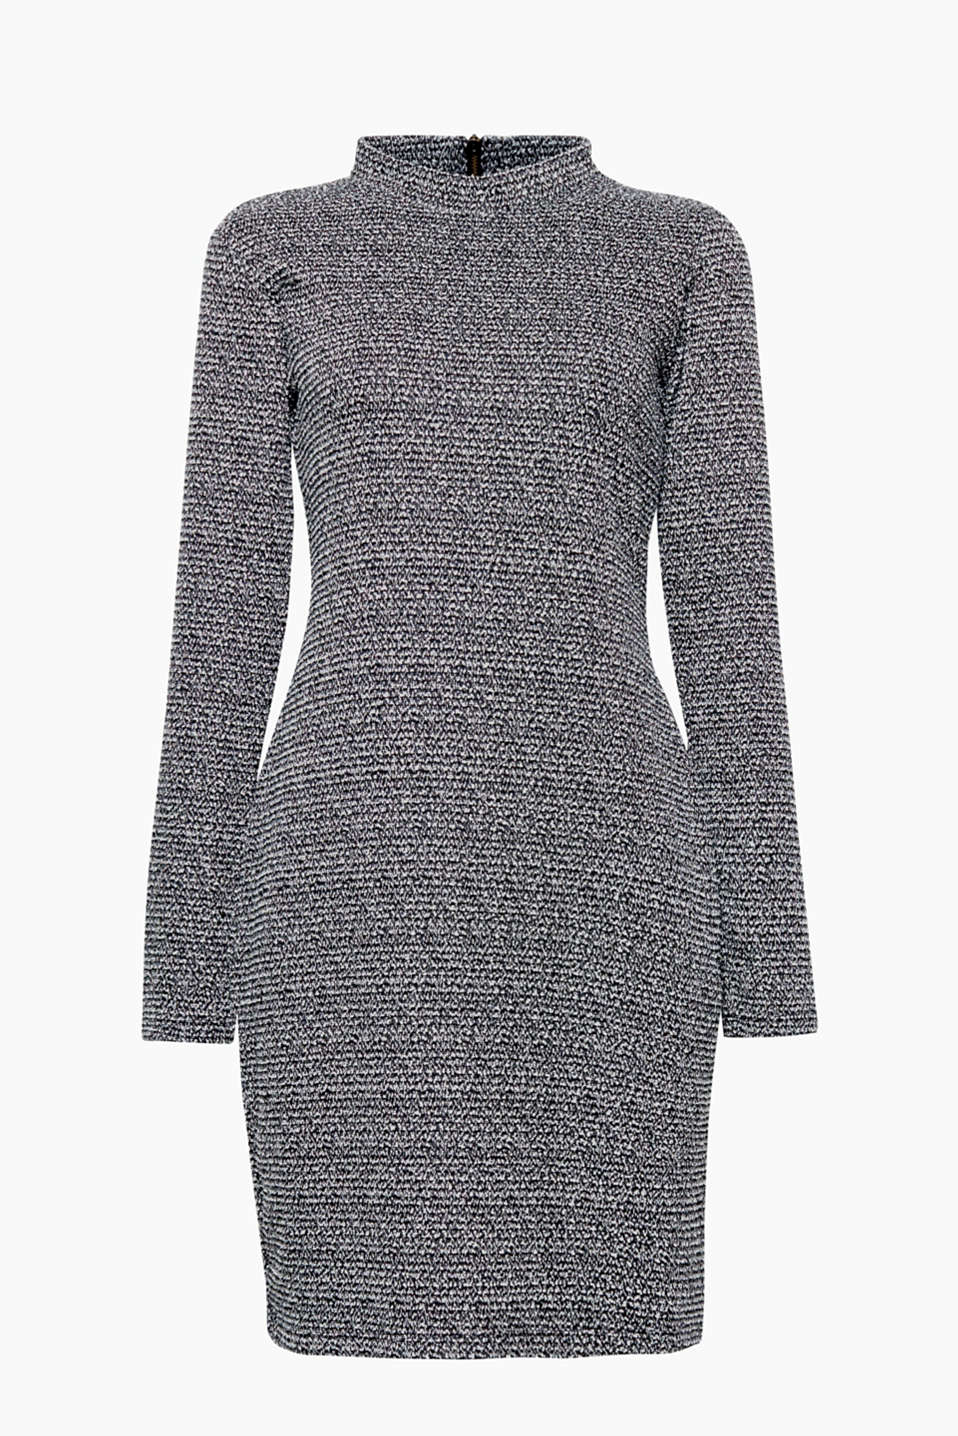 This figure-hugging, stretchy dress with a salt-and-pepper pattern is a go-to favourite for everyday wear!